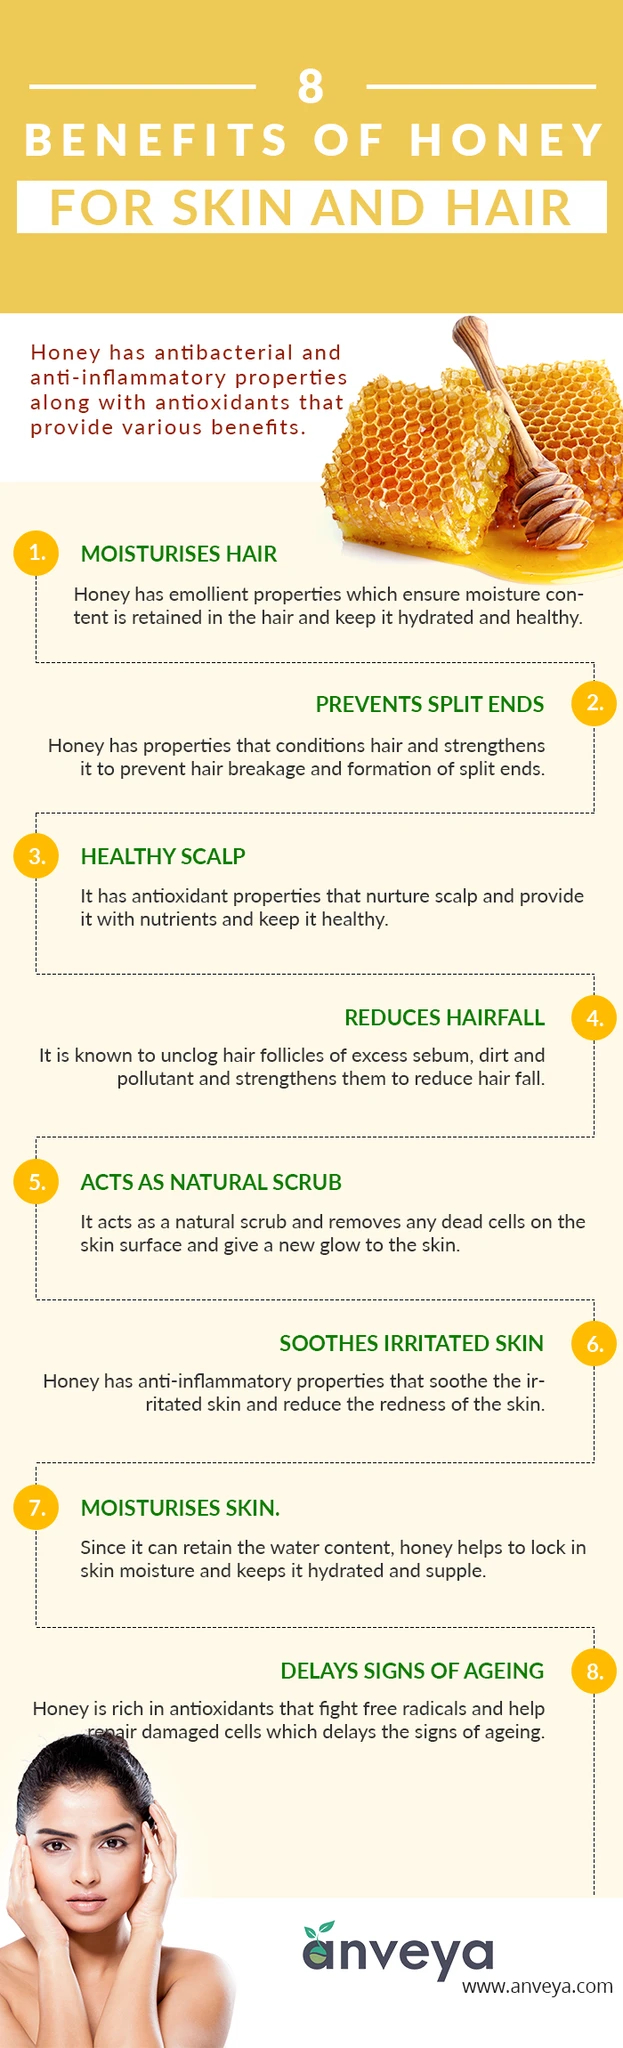 8 Benefits of Honey for Skin and Hair